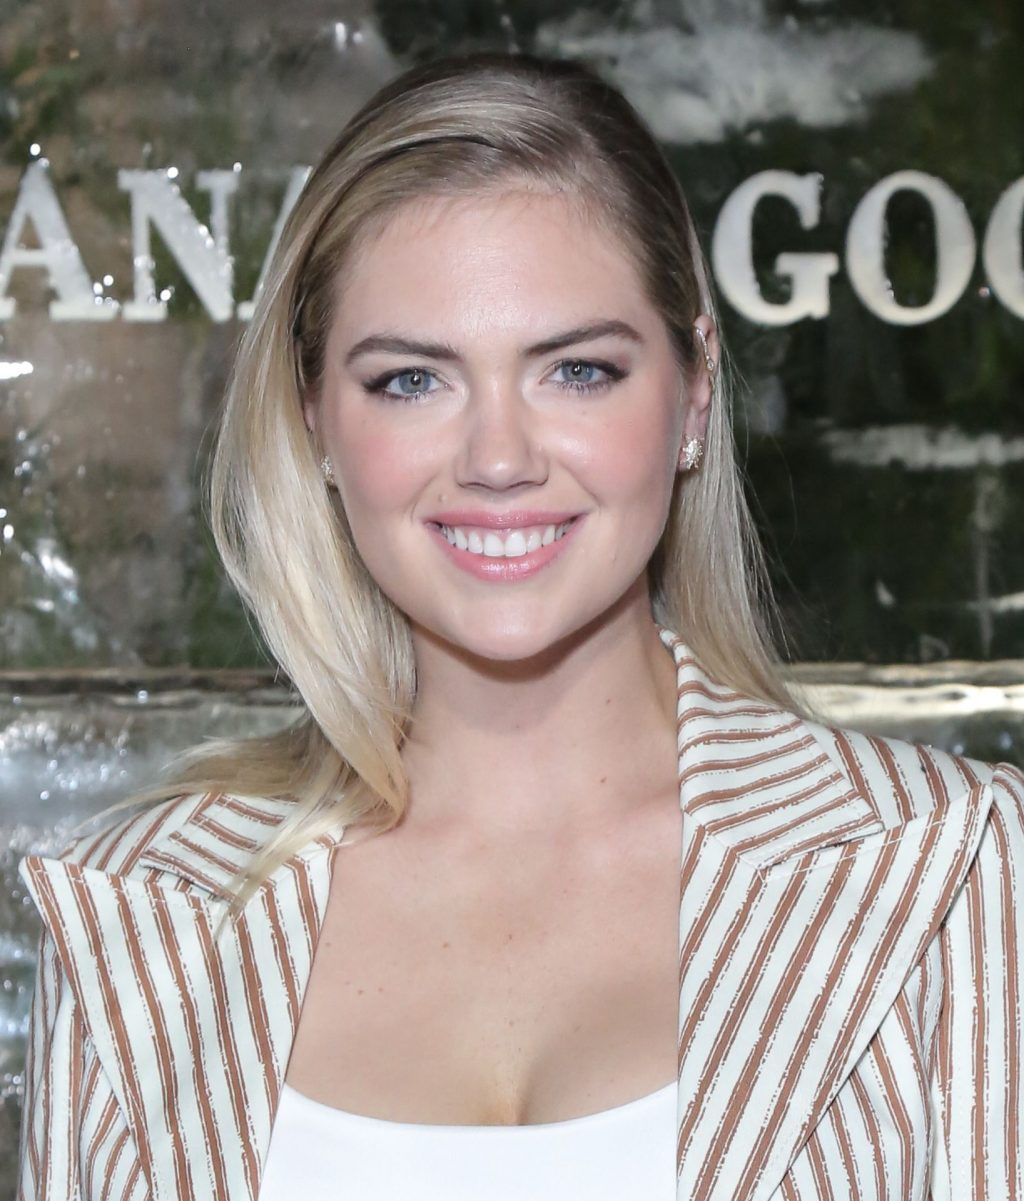 Kate Upton Sexy The Fappening Blog 50 1024x1201 - Kate Upton Attends Canada Goose And Vogue Cocktails & Conversations (104 Photos)